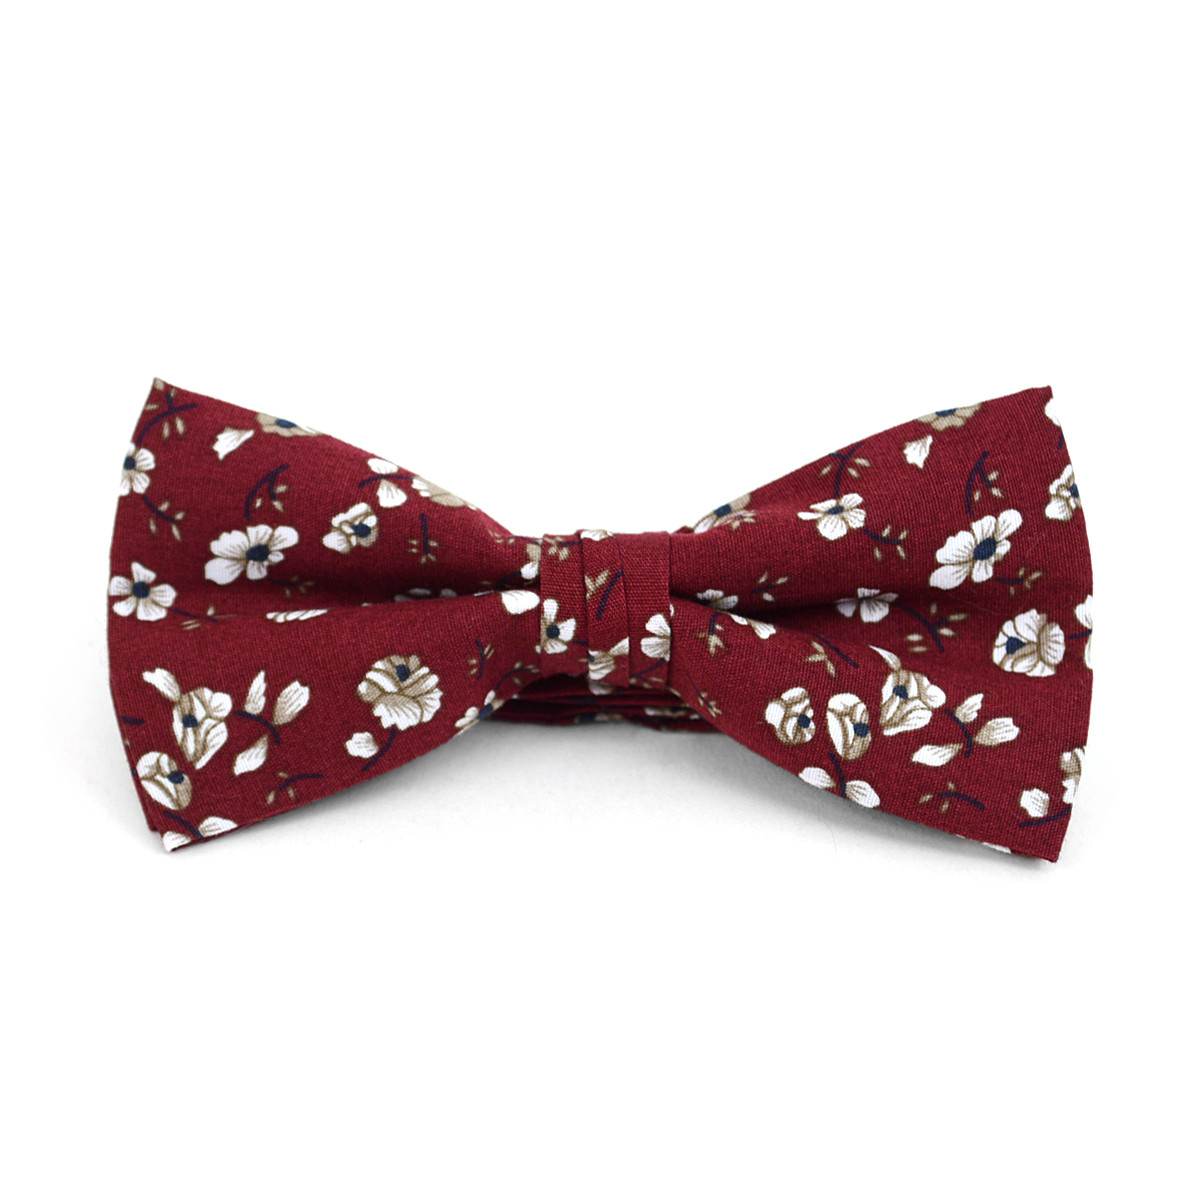 3pc Floral Wedding Cotton Banded Bow Tie - NFCB17125